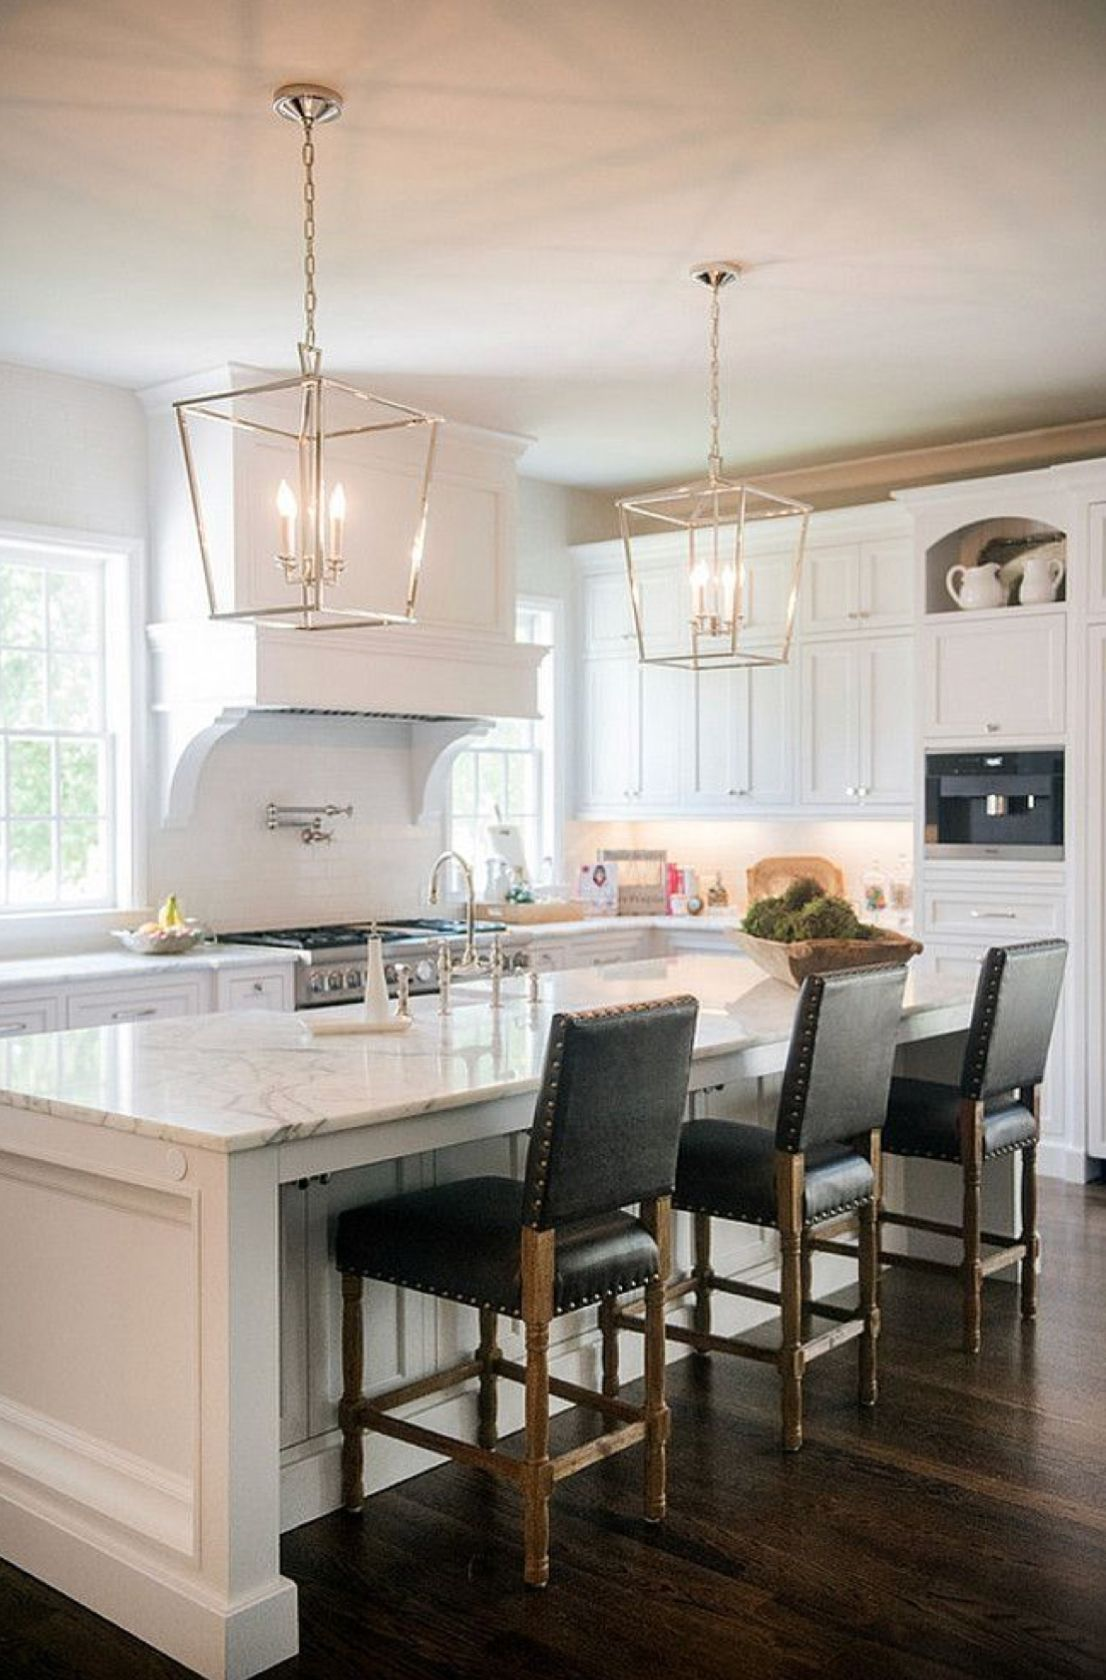 Pin by brunettetemi on the interior in pinterest kitchens